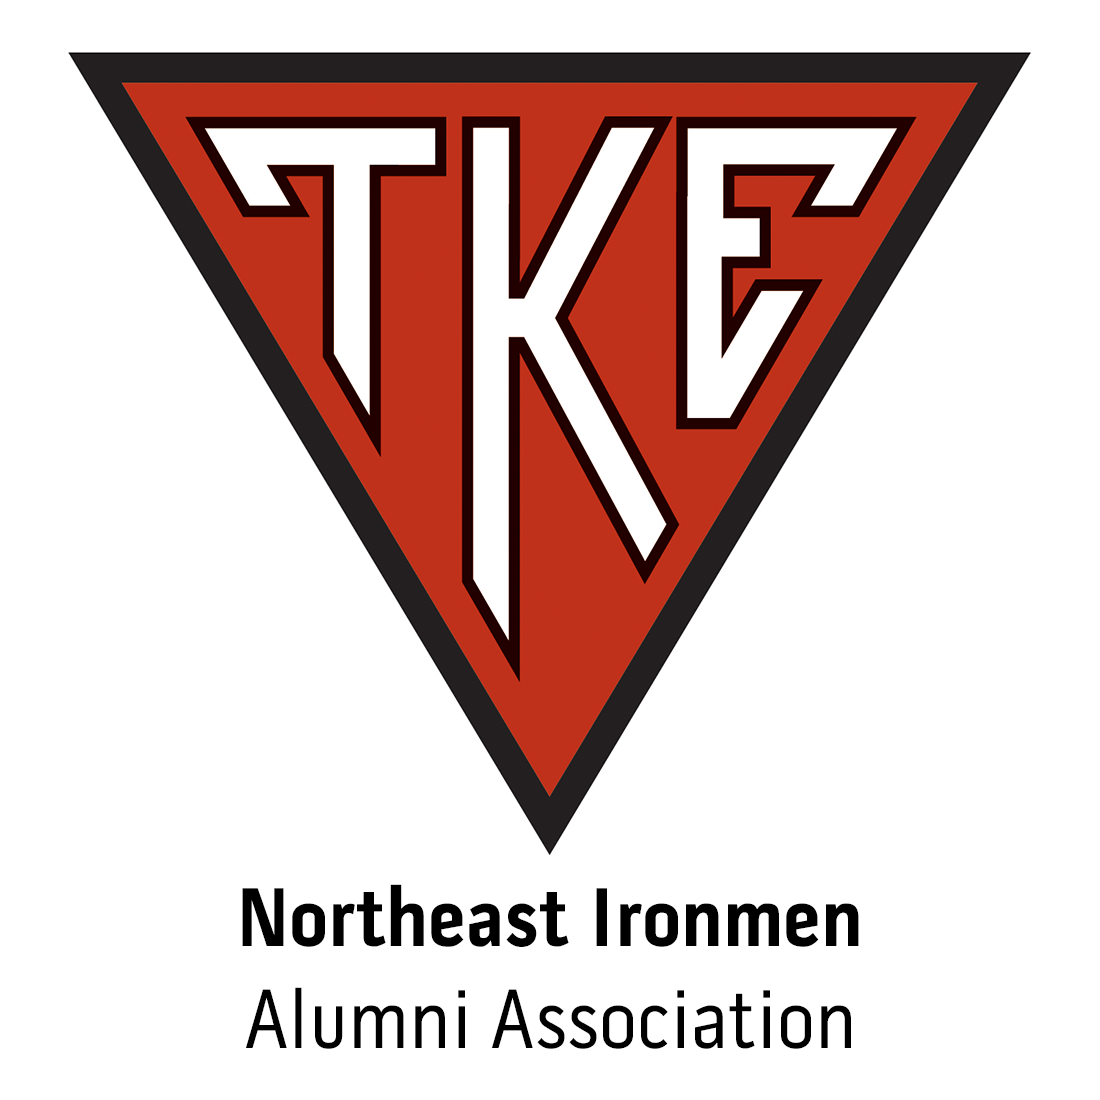 Northeast Ironmen Alumni Association at Region 1